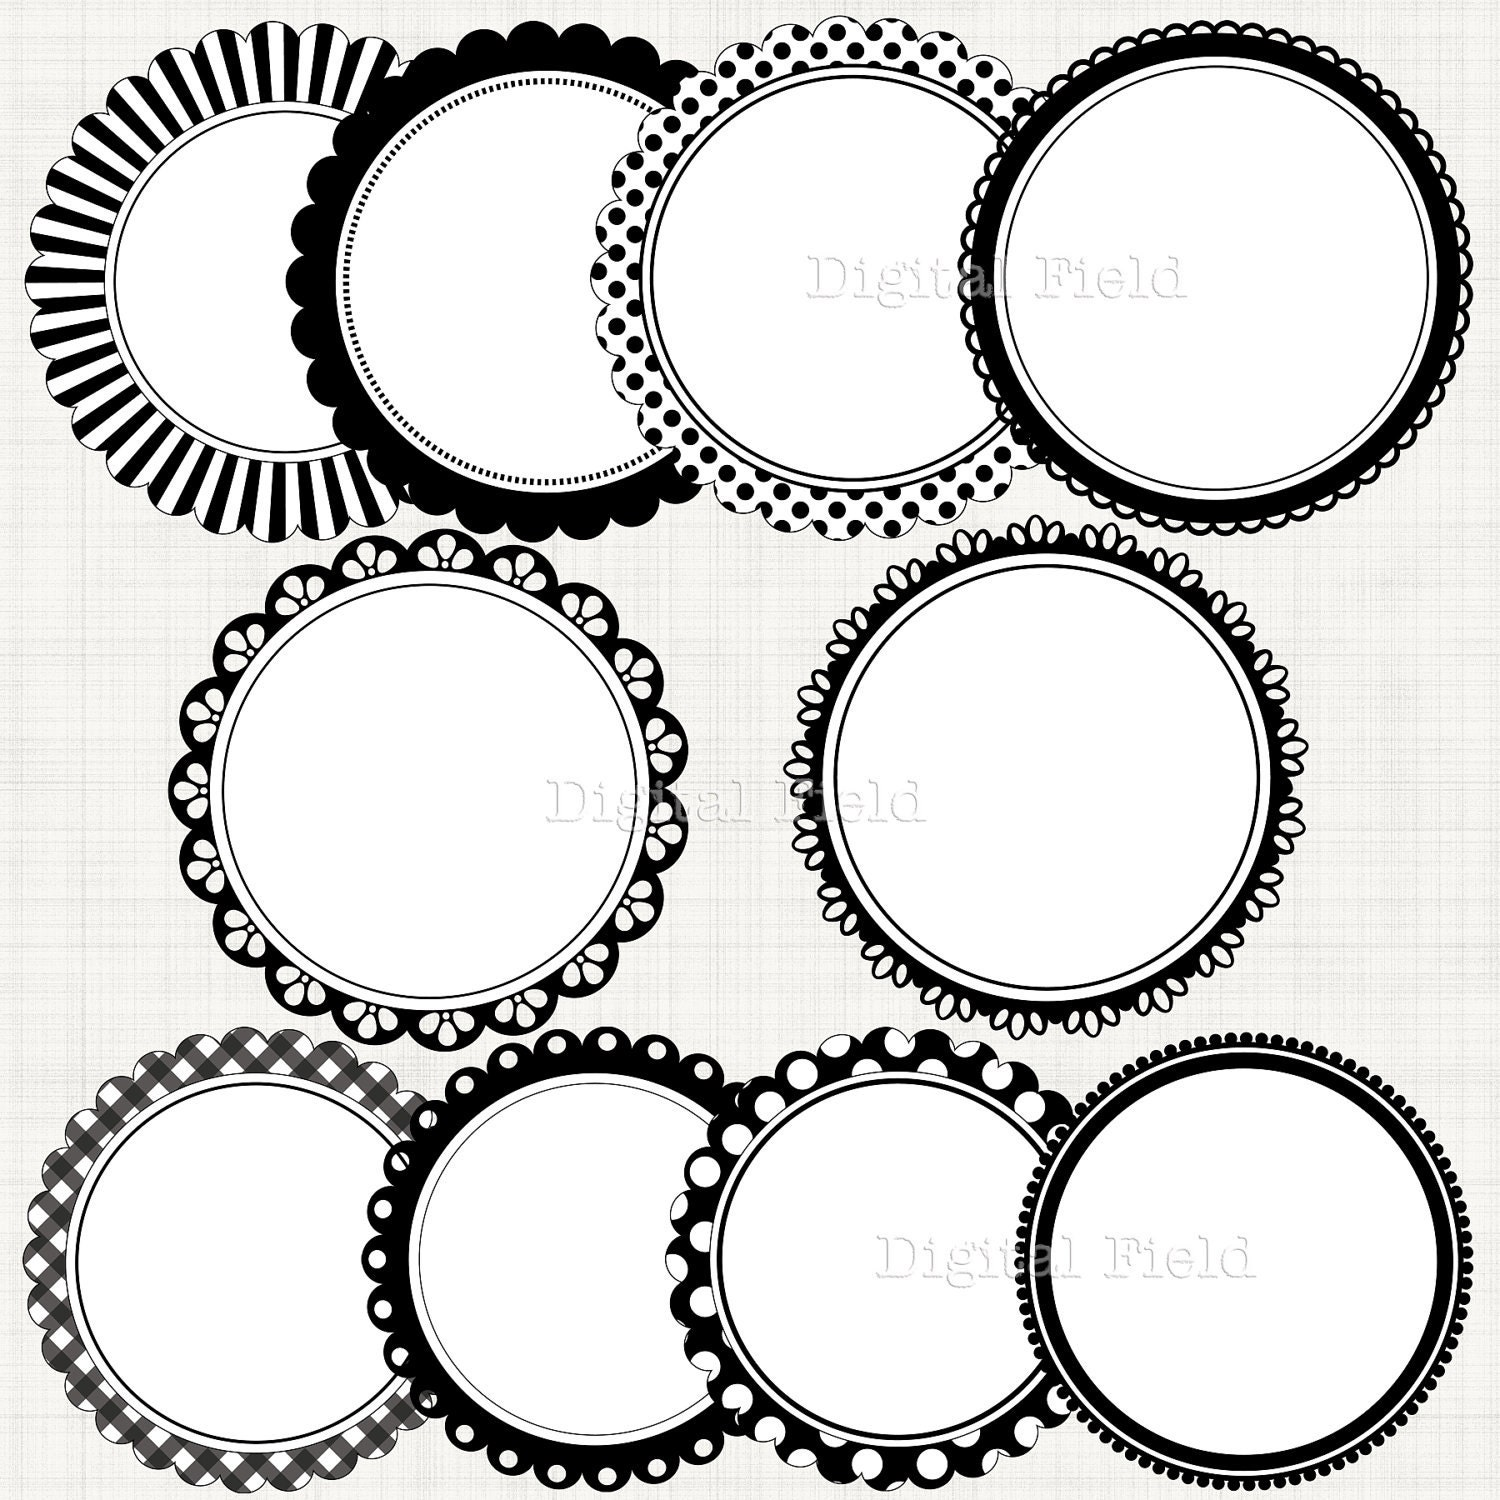 Blackwhite Scalloped Circle Frames on digital watermark for free